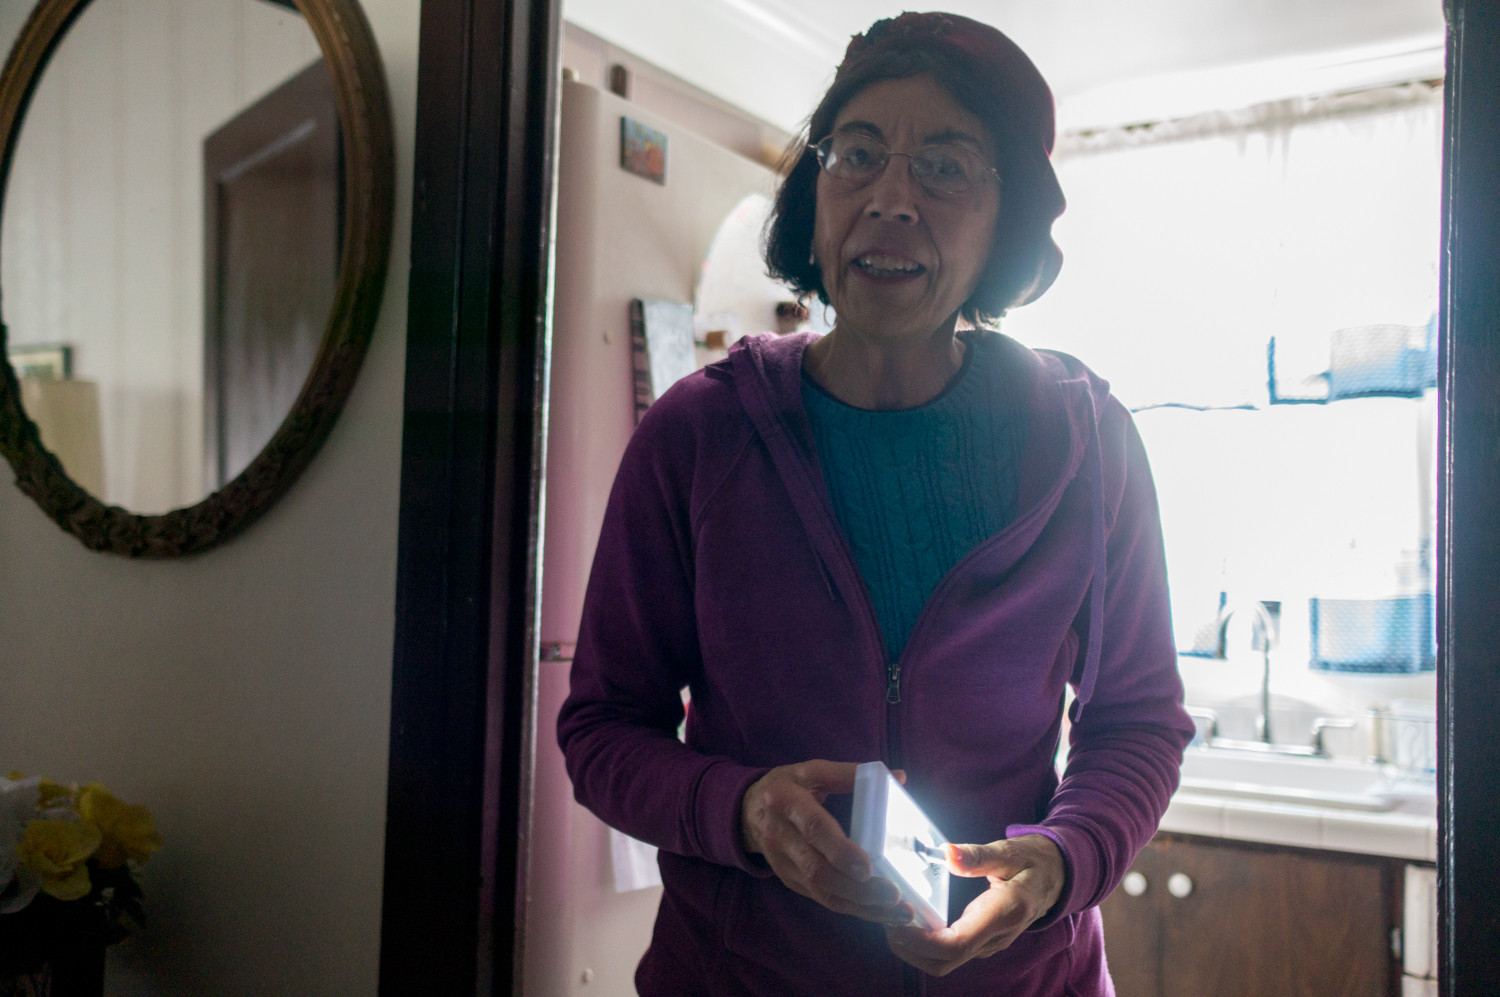 Eileen Fisher holds an LED light that she uses to see at night. After the winter storm knocked down a massive tree on Sylvan Avenue between West 256th and West 254th, Fisher and her husband have relied on their stove's burners for heat, while keeping milk outside in front of their house, nestled in the snow.